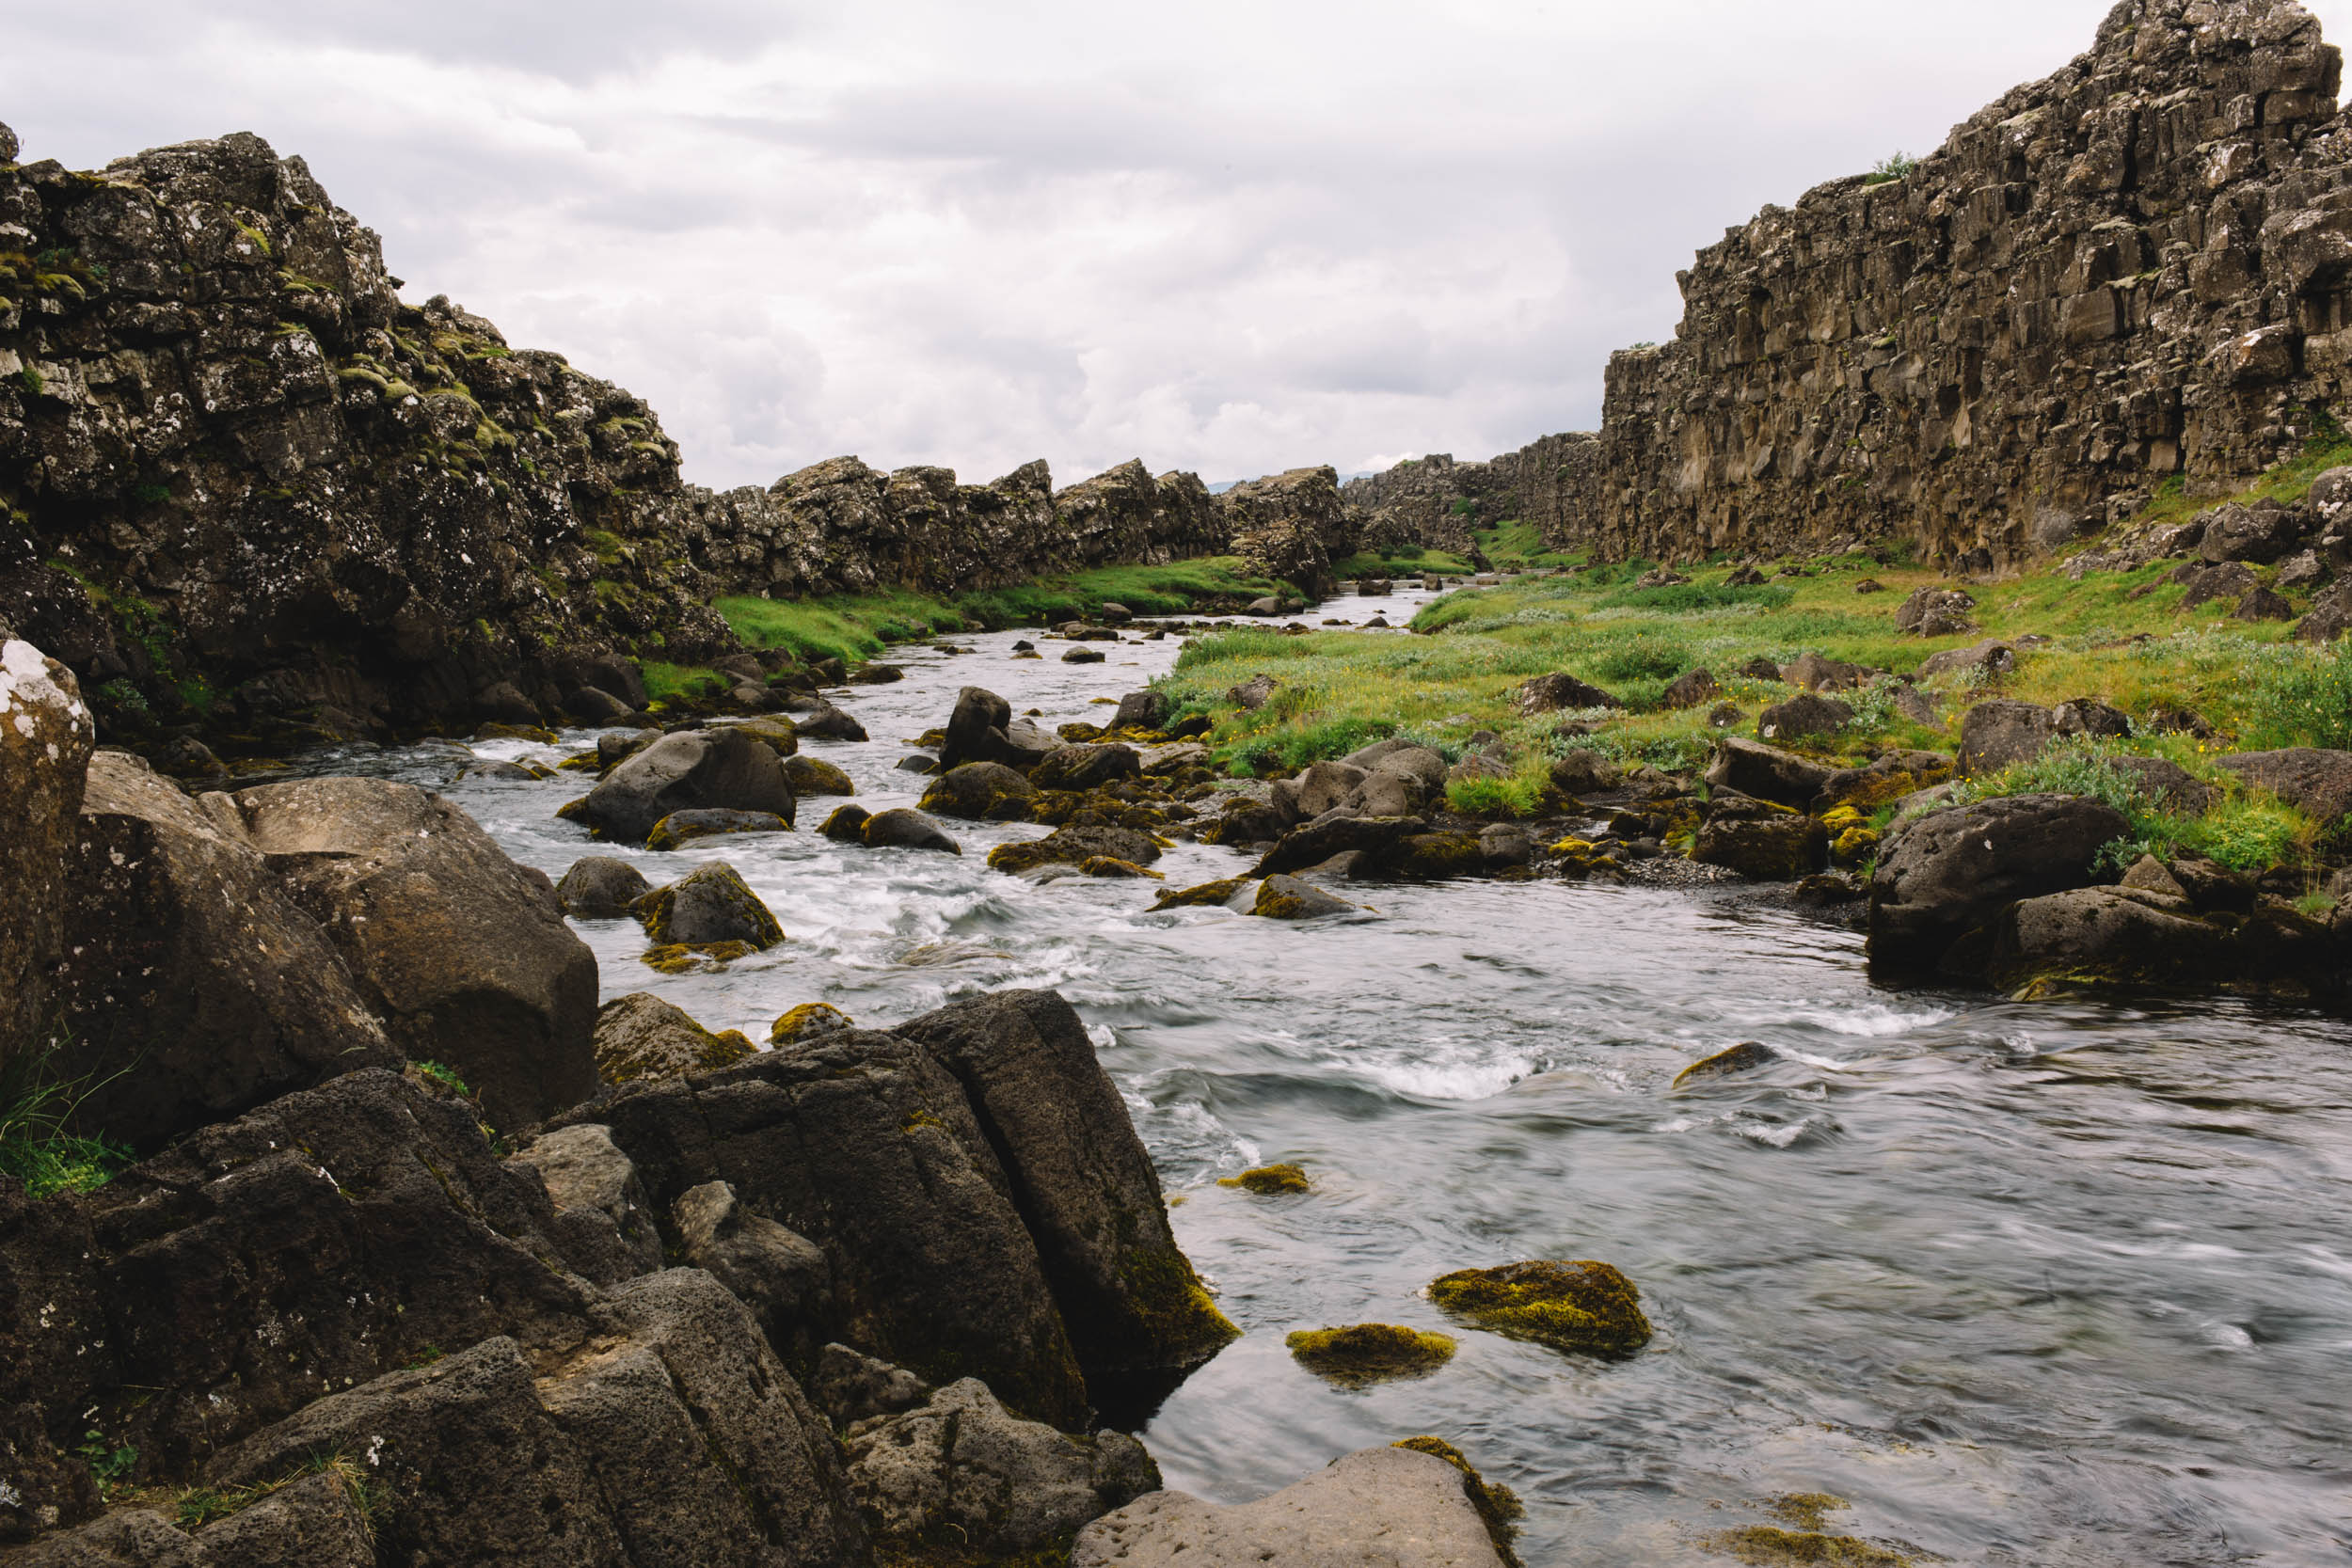 iceland-travel-camping-ring-road-009.jpg